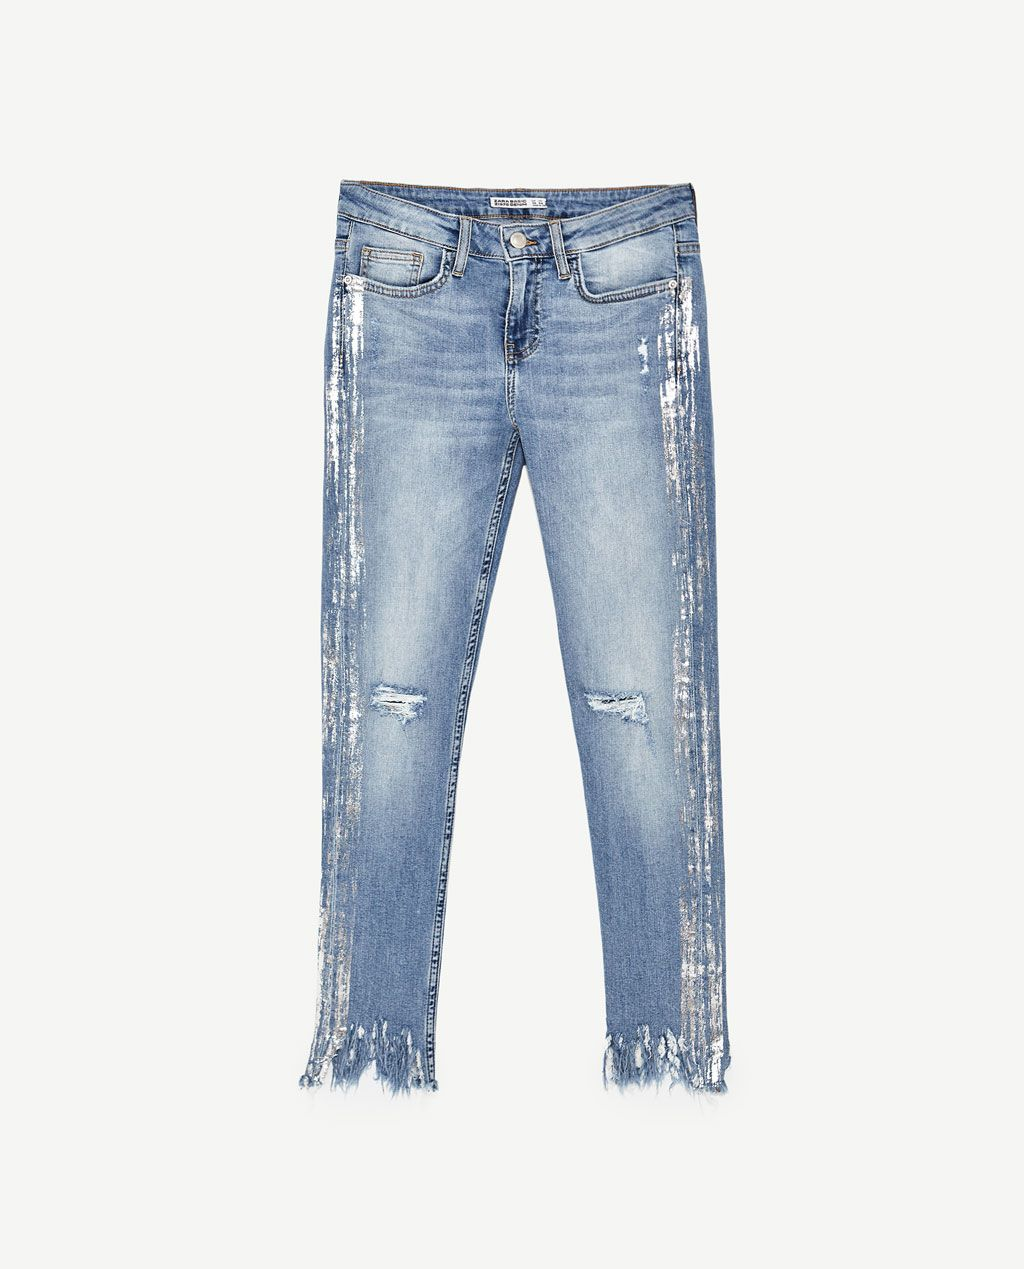 eae9f91a Image 11 of MID RISE SILVER-TONED JEANS from Zara | Denim Trends in ...